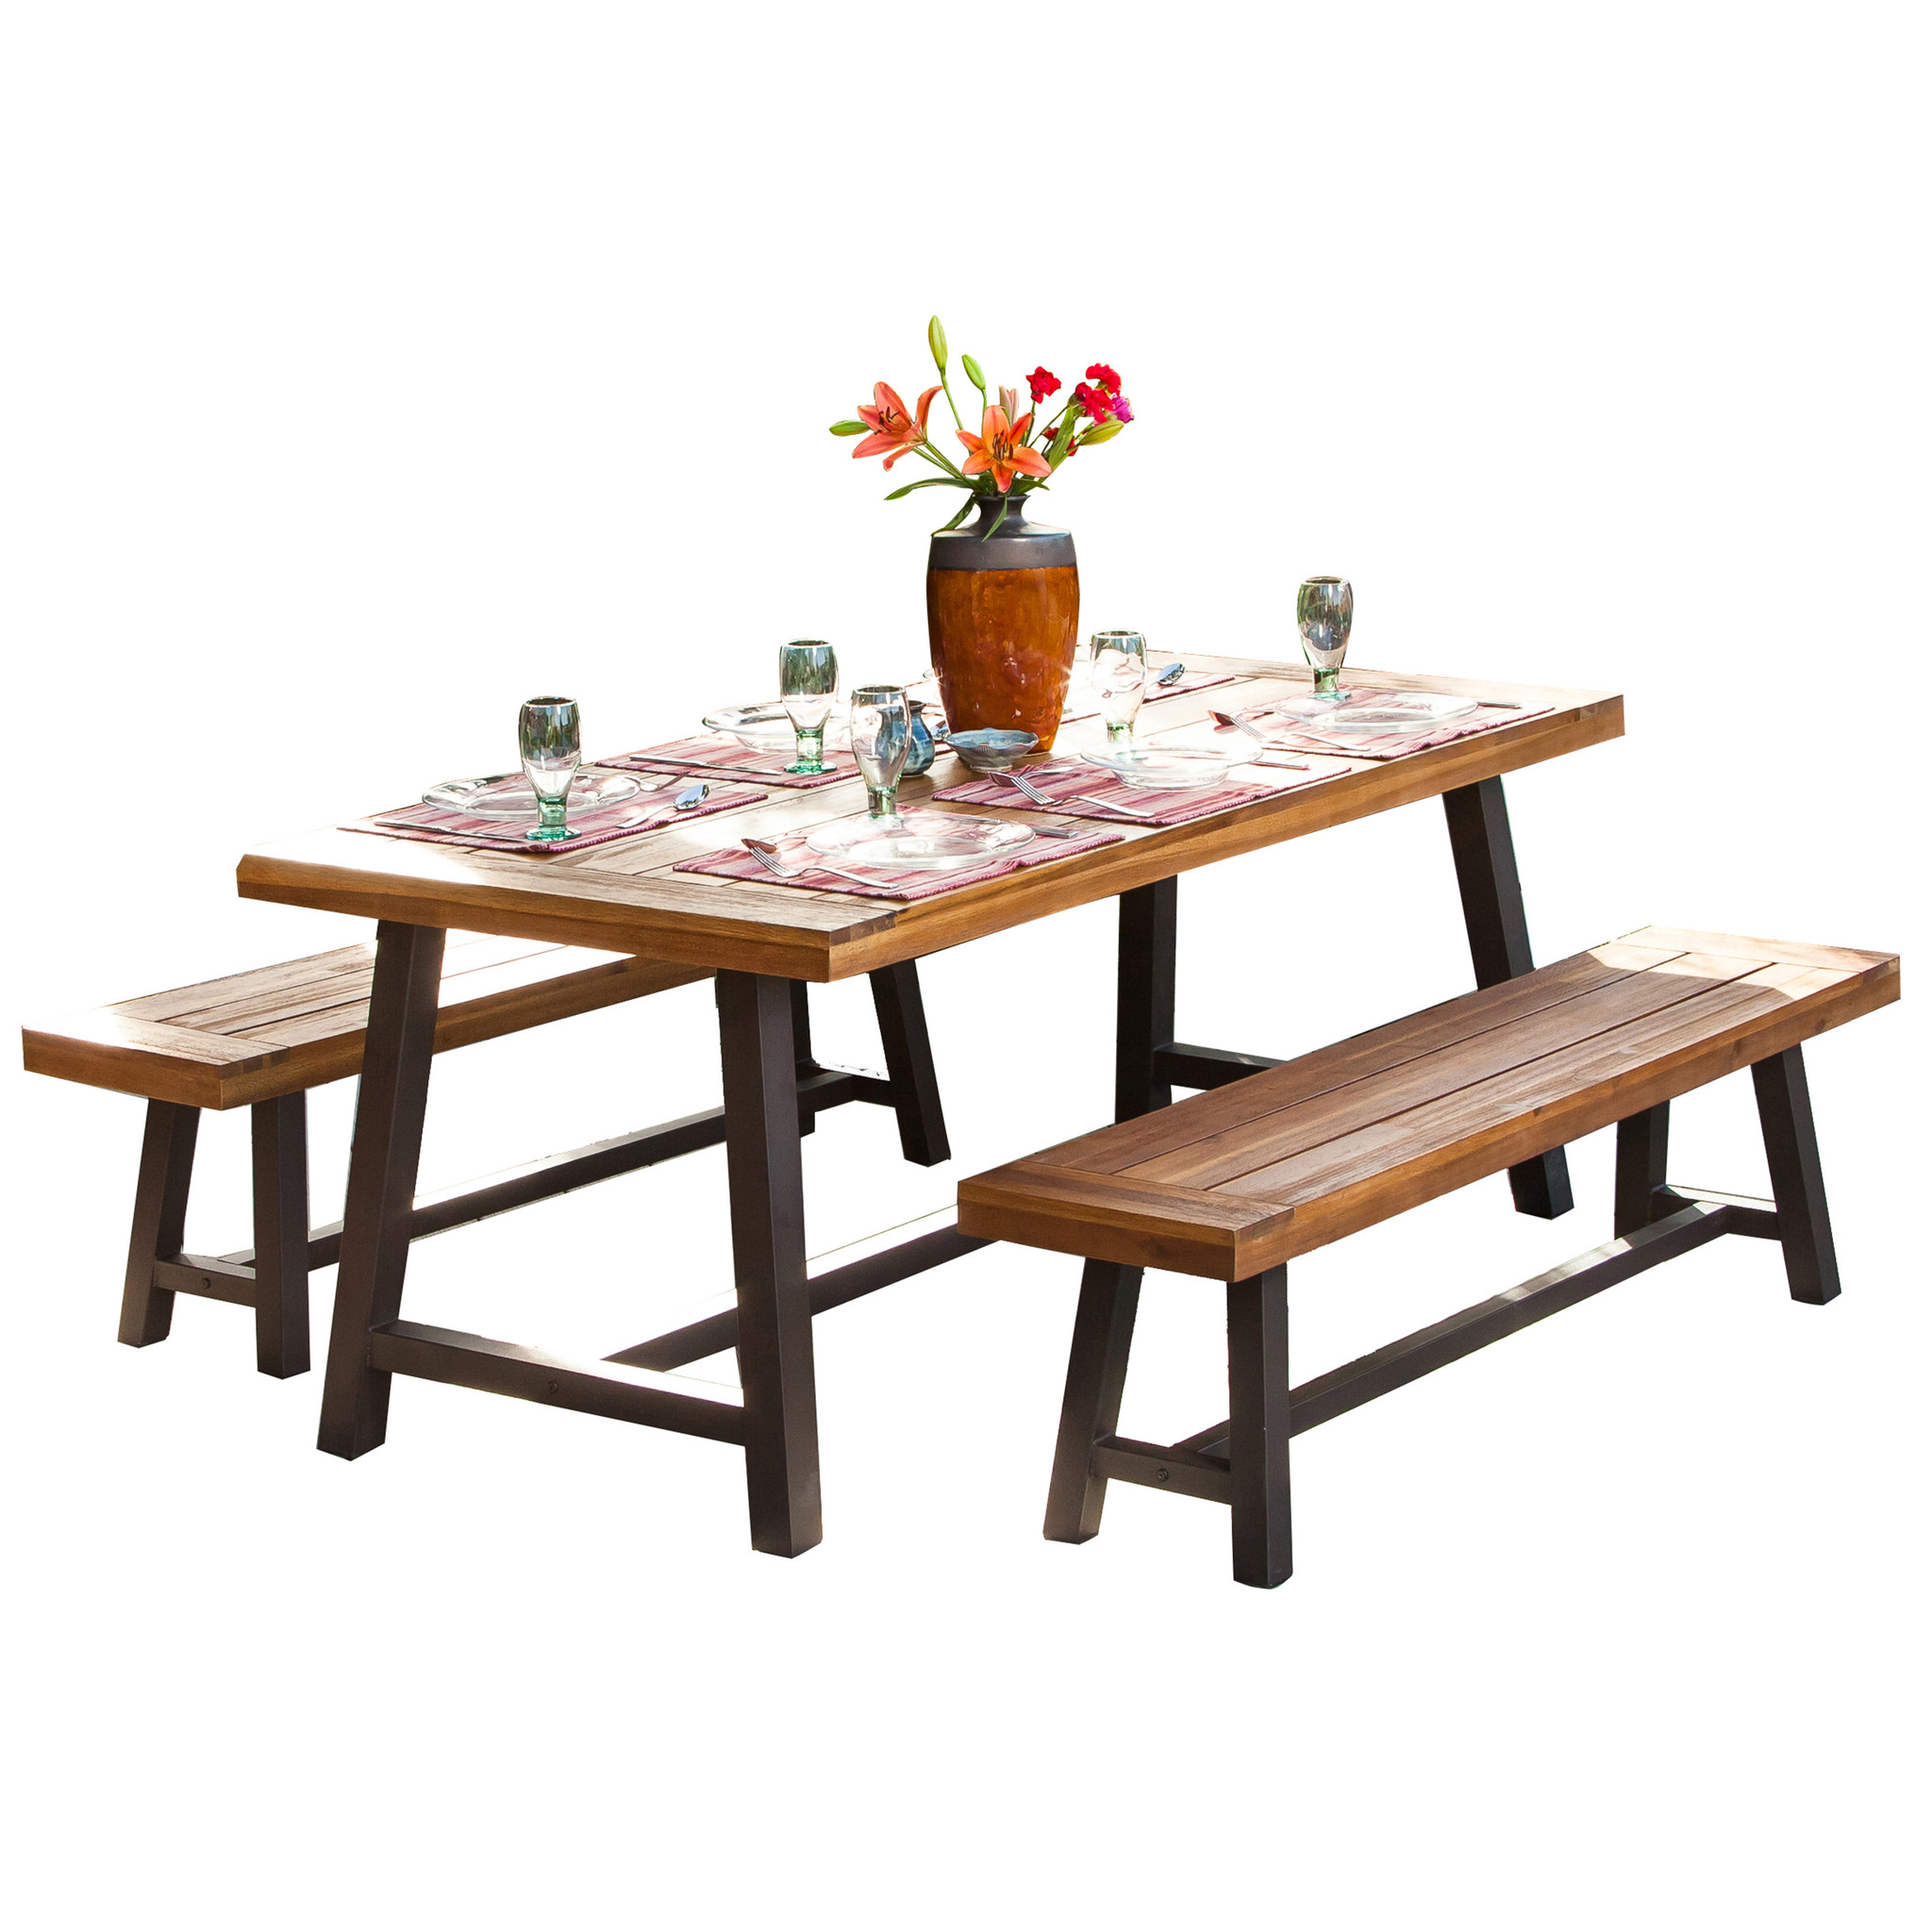 Diego Rustic Metal 3-piece Outdoor Dining Set